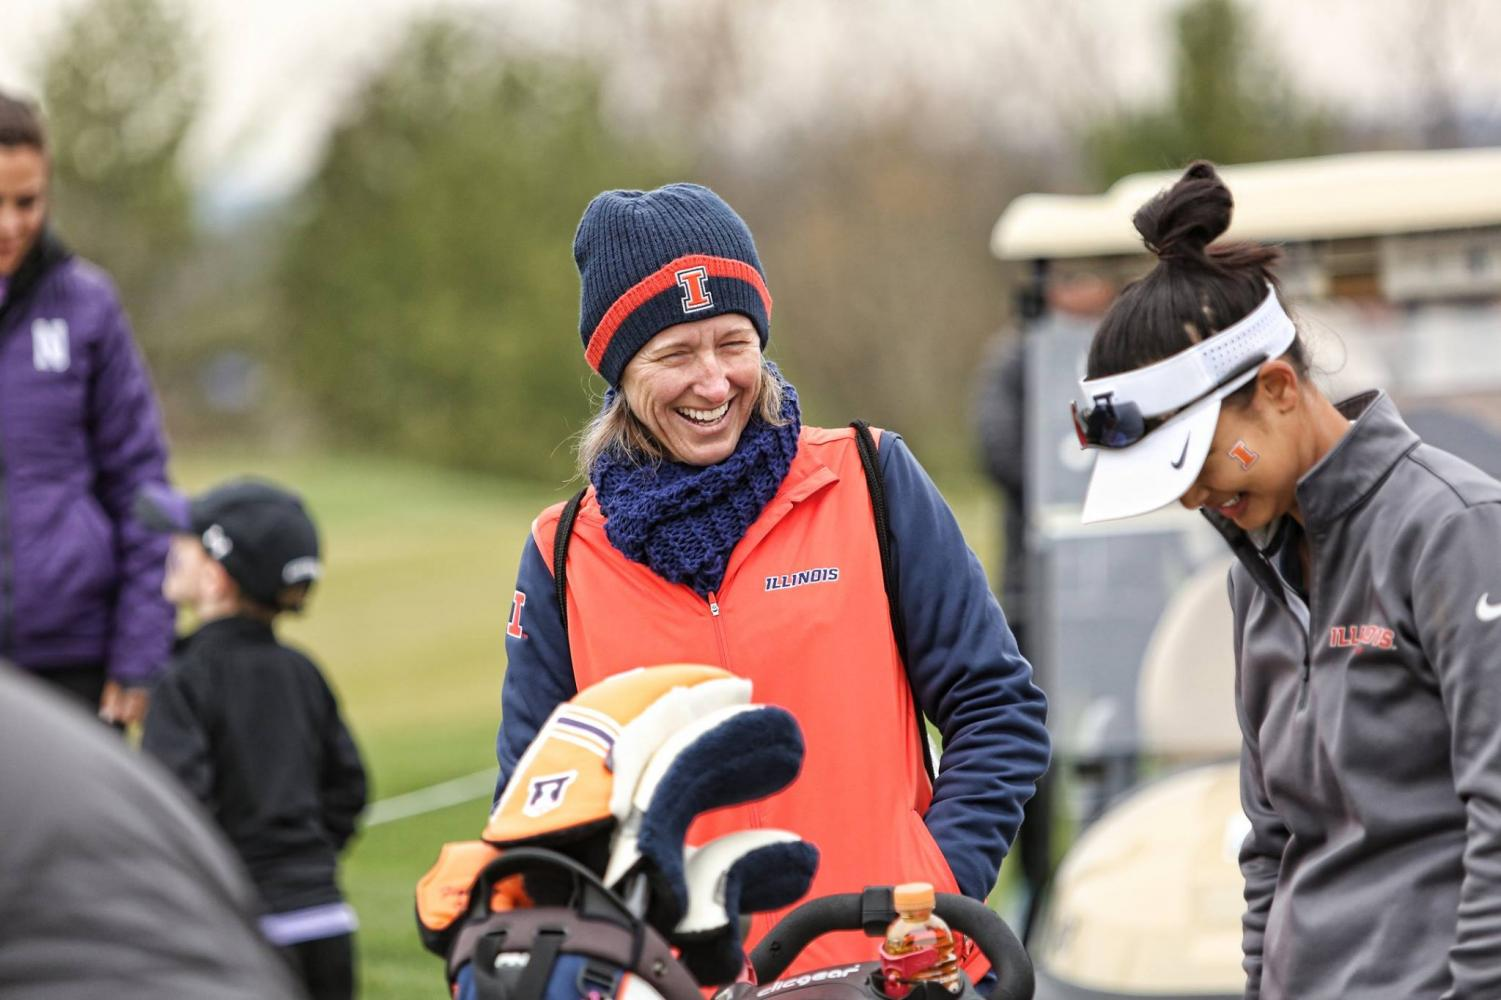 Women's golf head coach Renee Slone laughs alongside an Illini golfer. Slone was awarded Big Ten Coach of the Year.